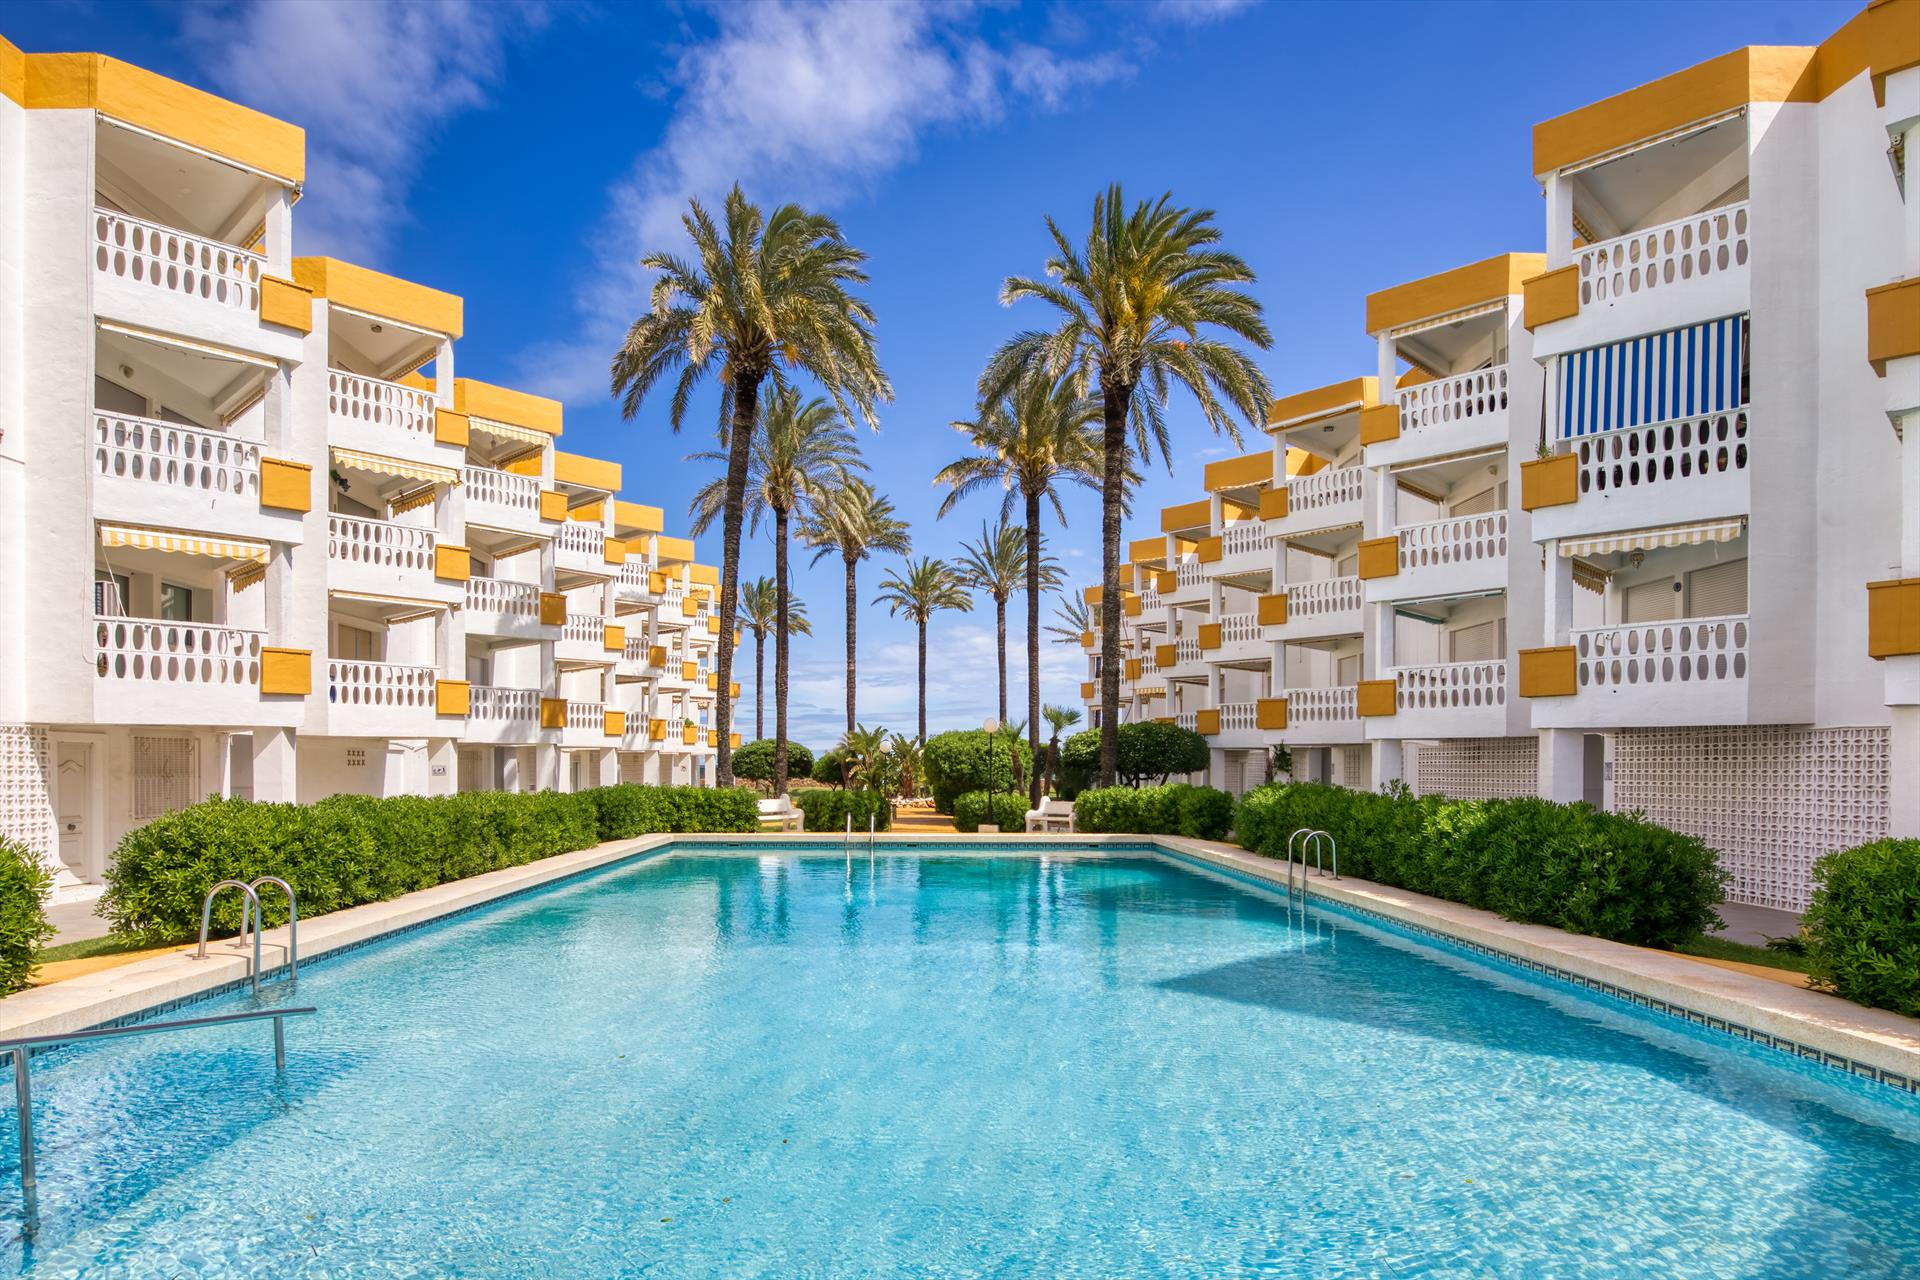 Holiday Beach, Apartment  with communal pool in Denia, on the Costa Blanca, Spain for 4 persons...